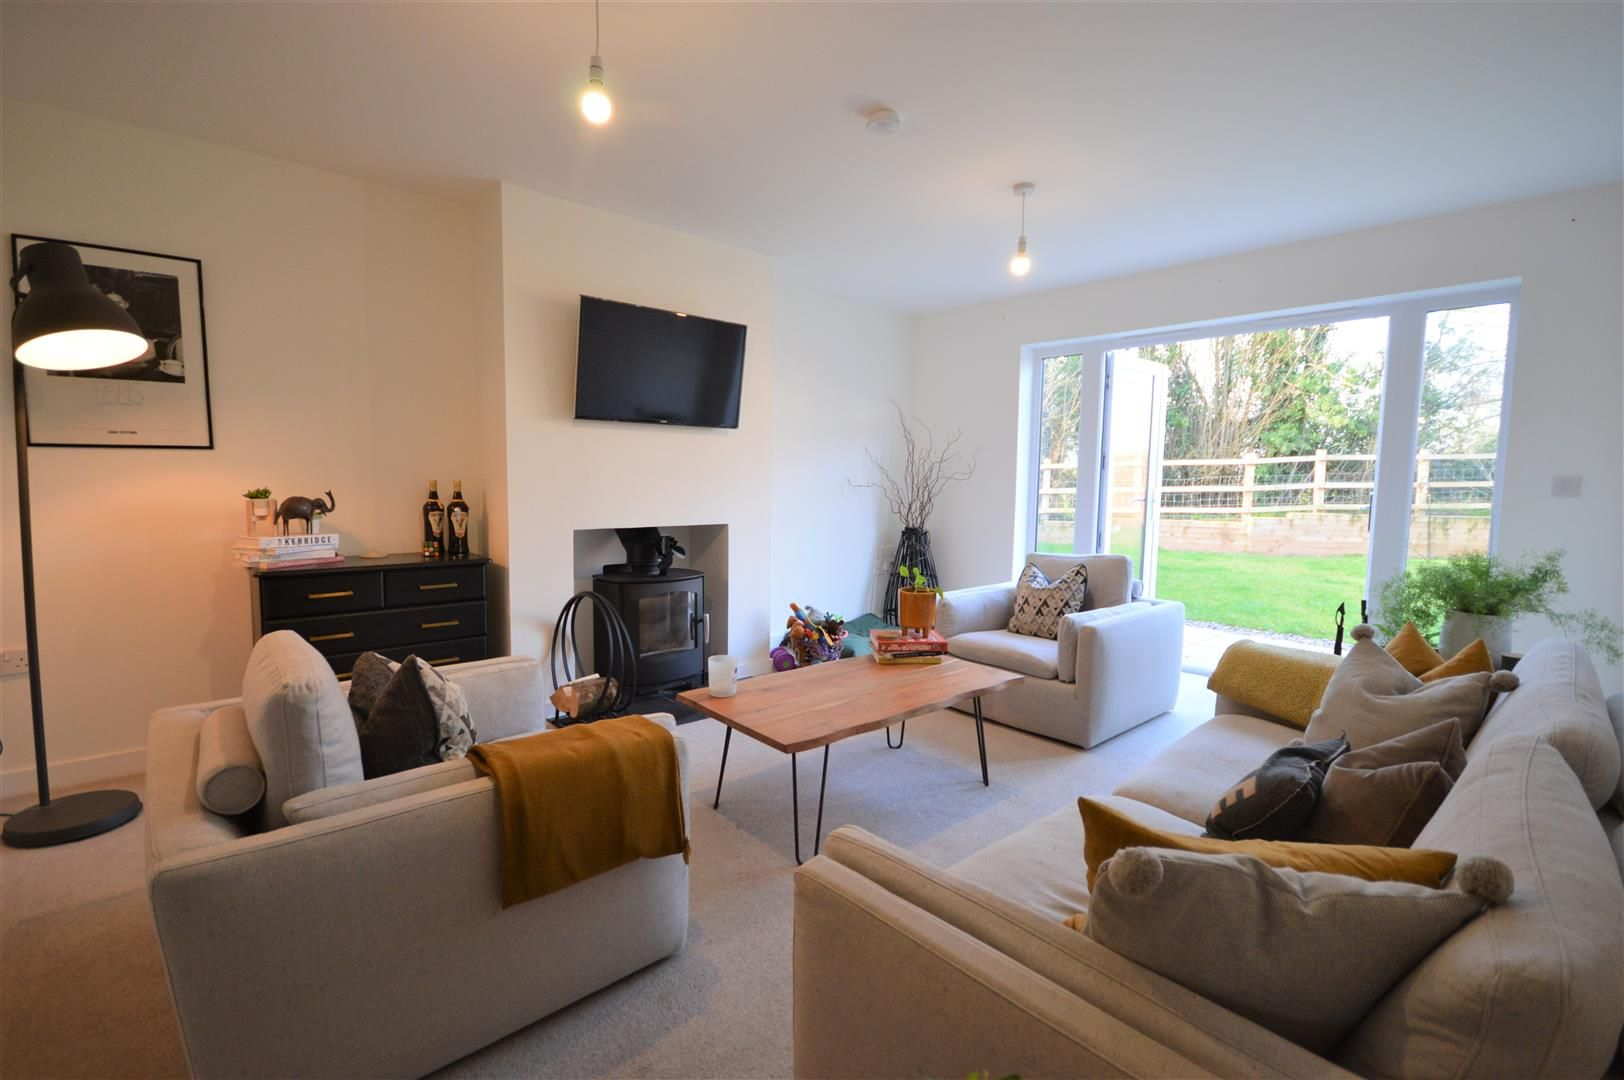 4 bed detached for sale in Weobley 3